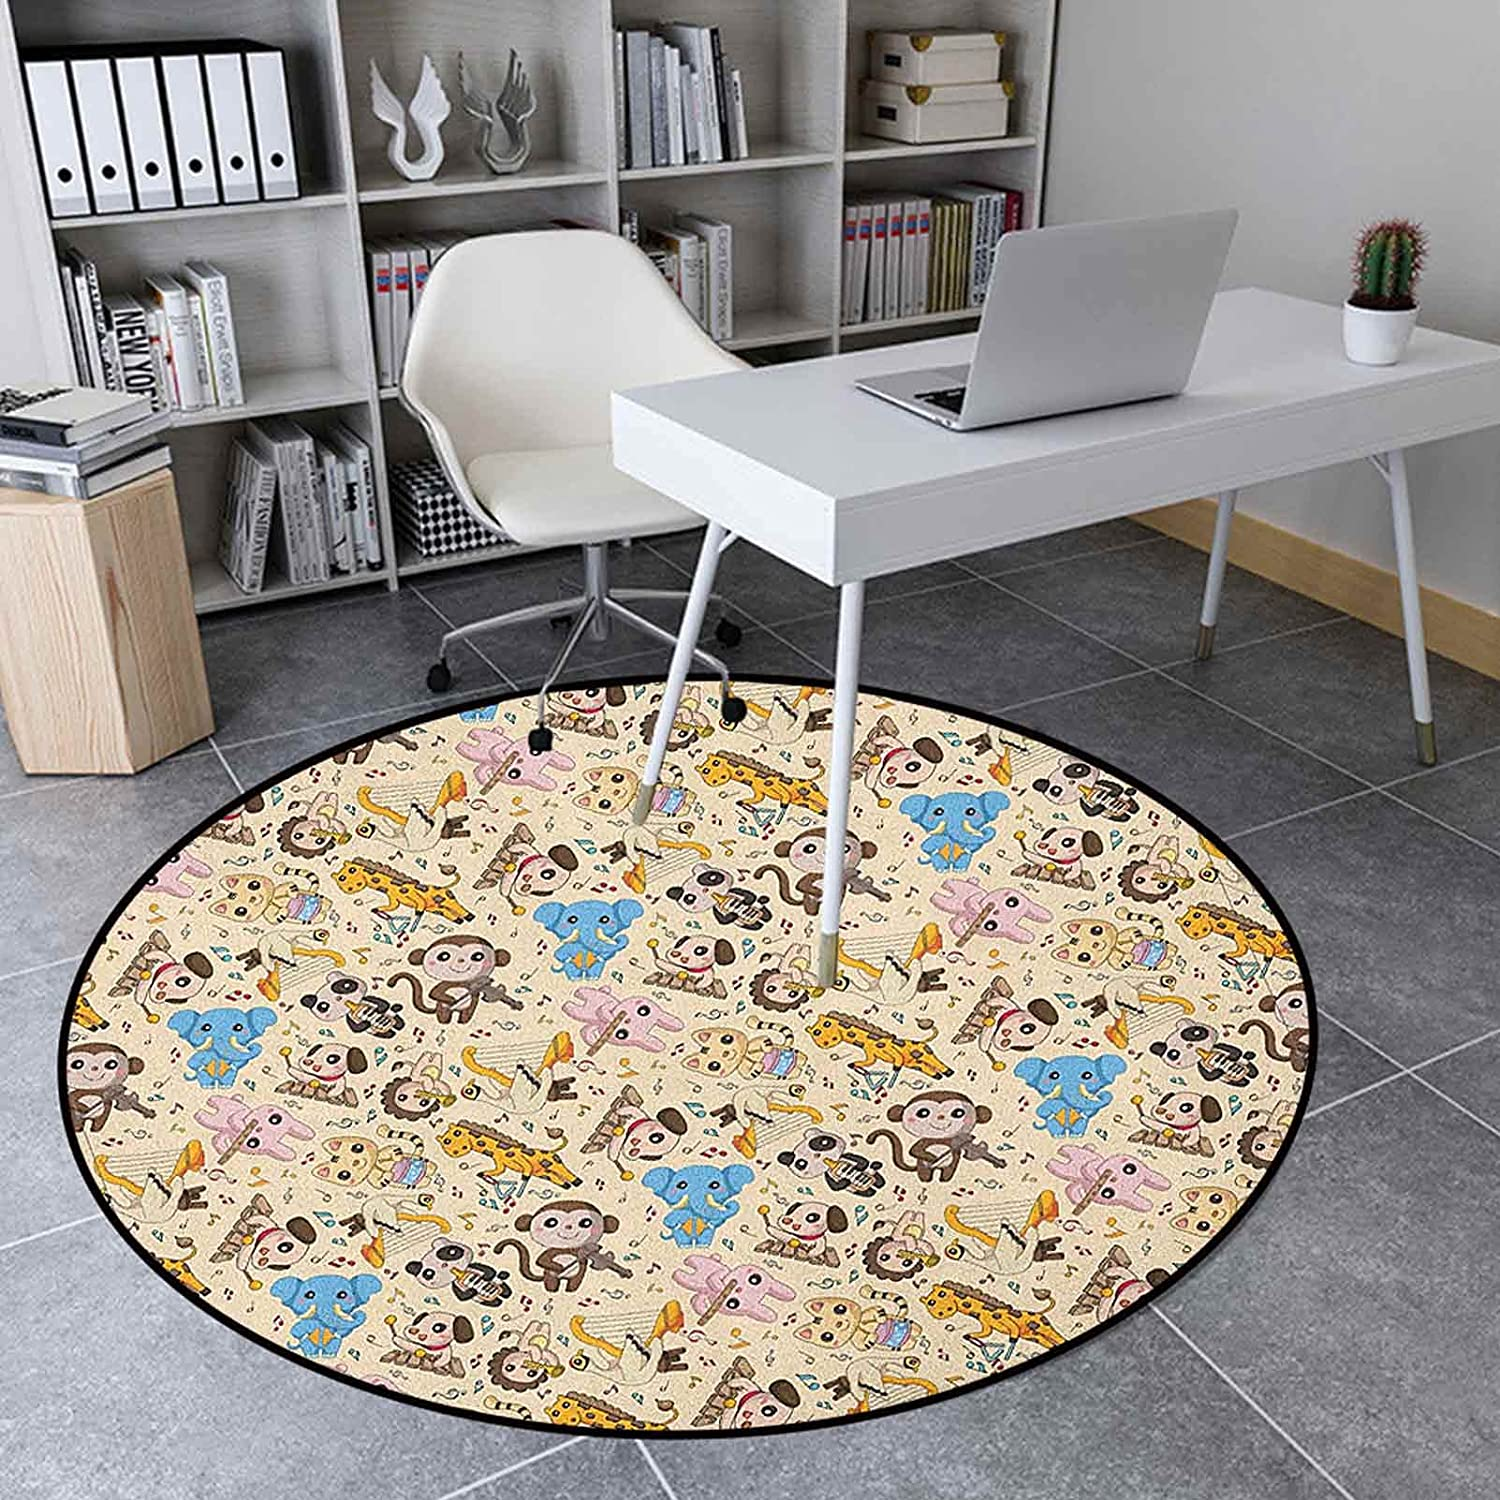 Cartoon Animal Area Rug Round 3.6 High order Ft Non-Slip Mat Max 67% OFF Inches